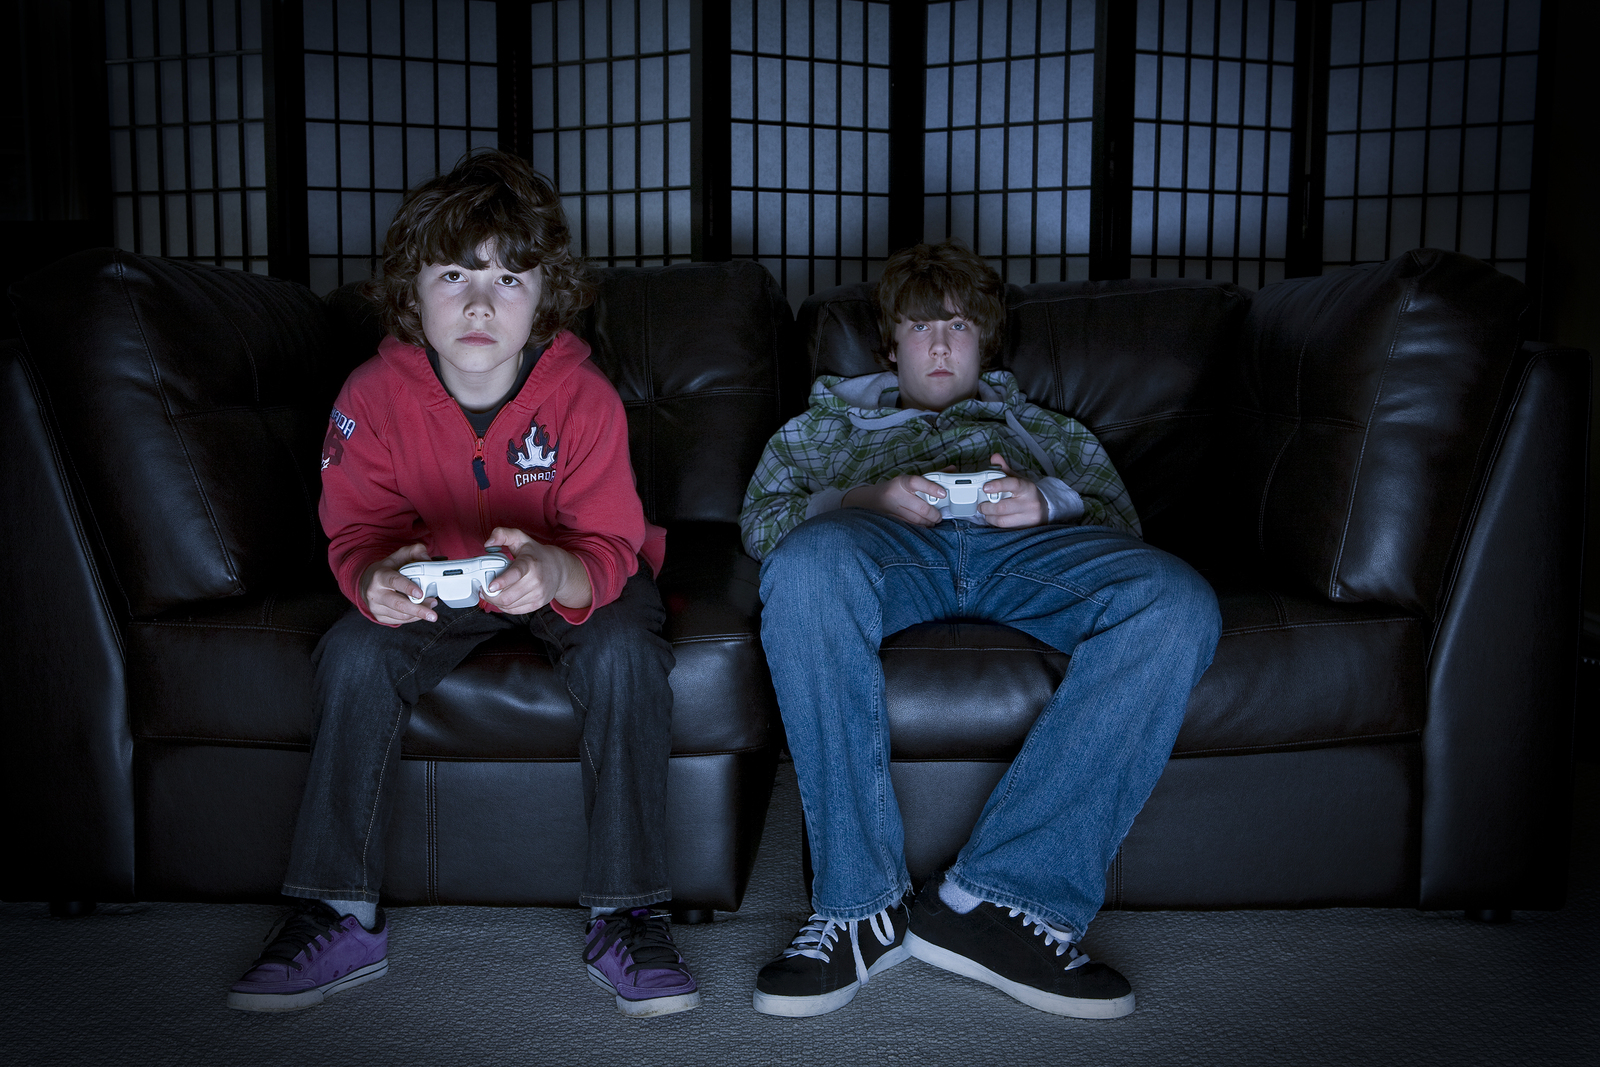 Video Game Addiction in Teenagers